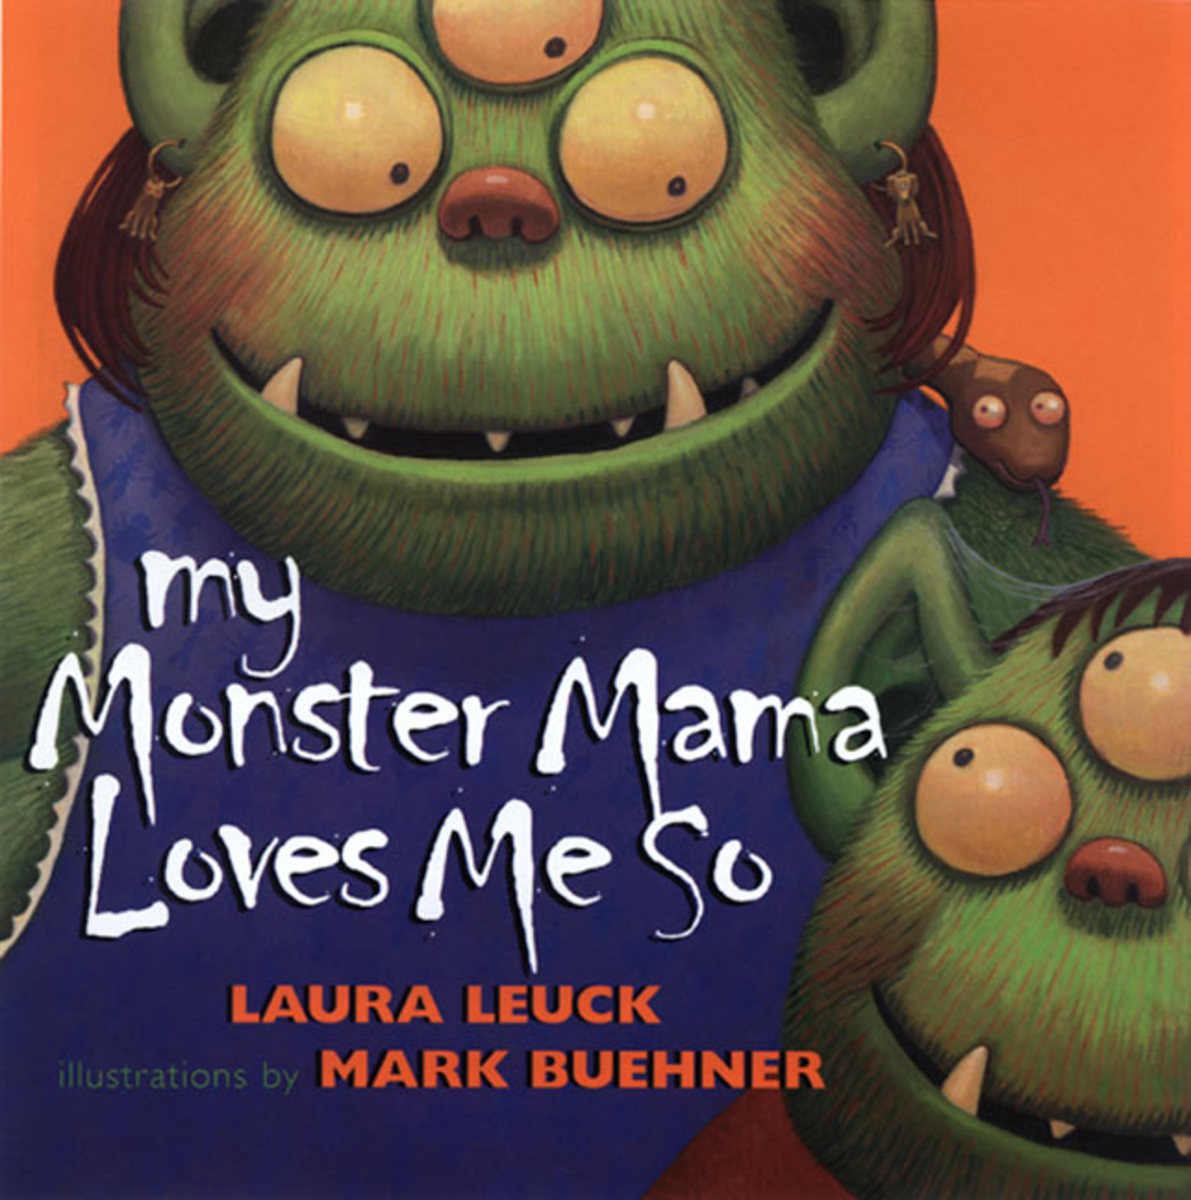 My Monster Mama Loves Me So by Laura Leuch